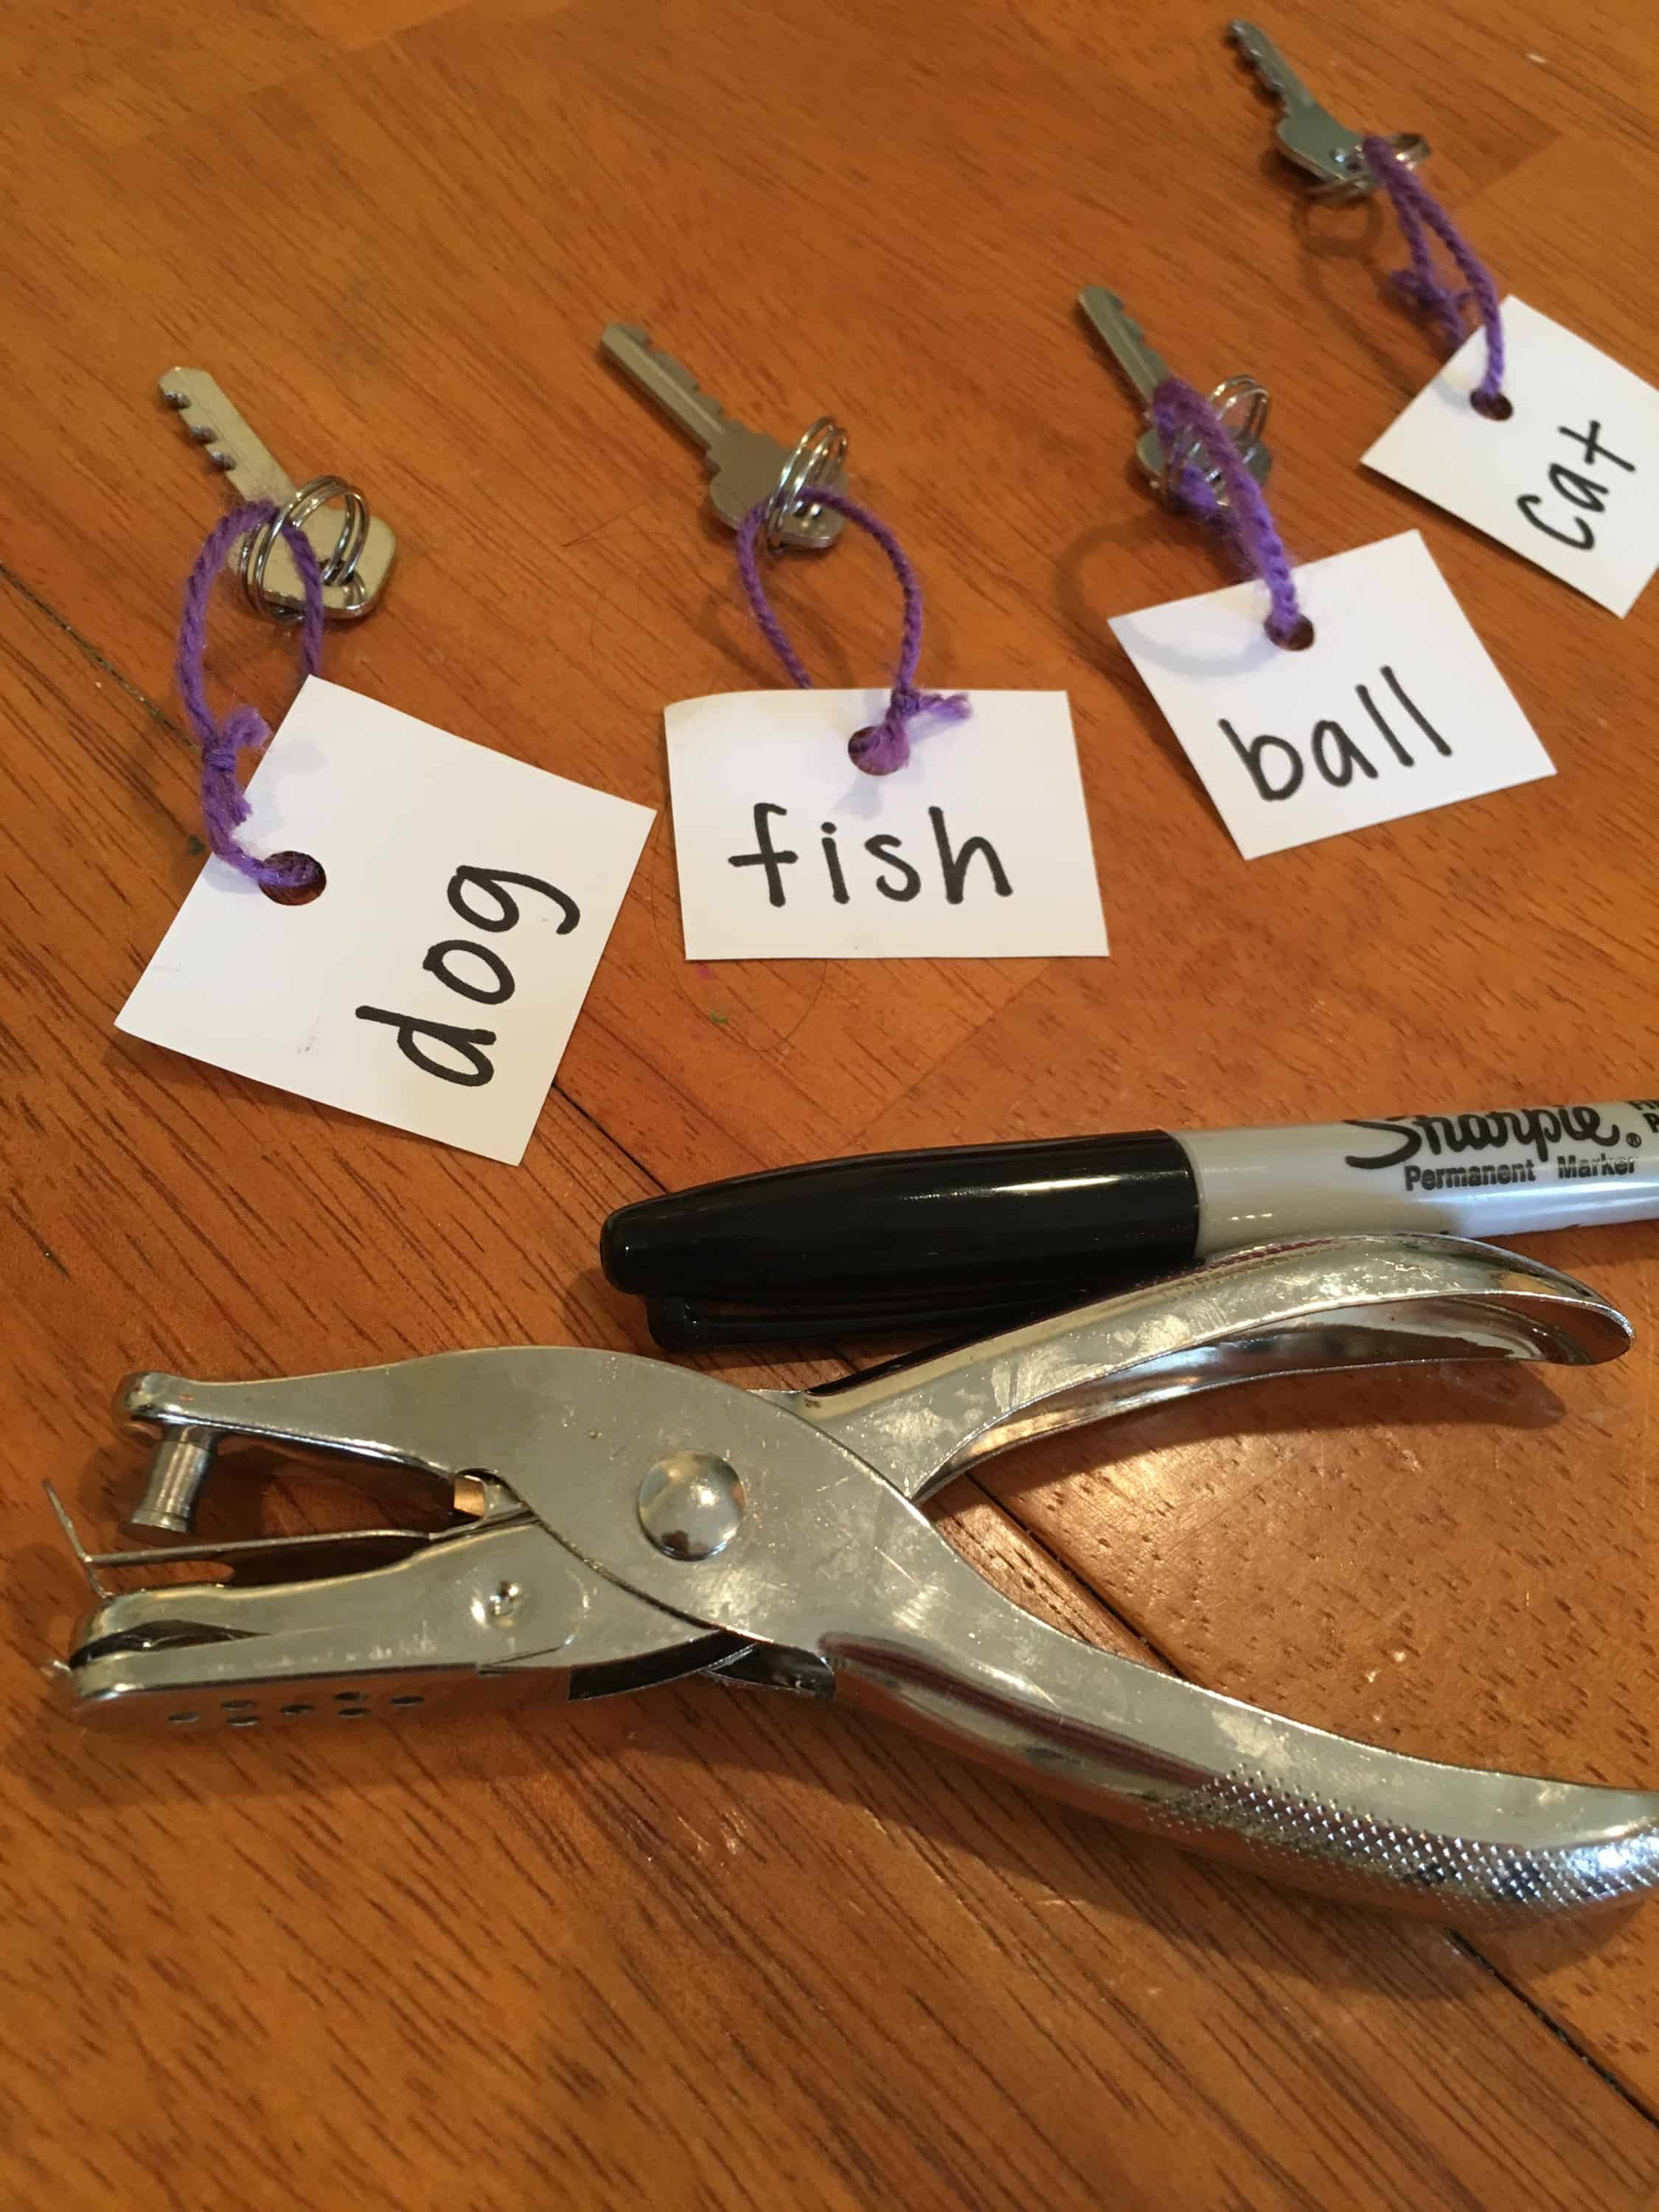 This simple sight word game uses padlocks and keys to make learning to read fun!